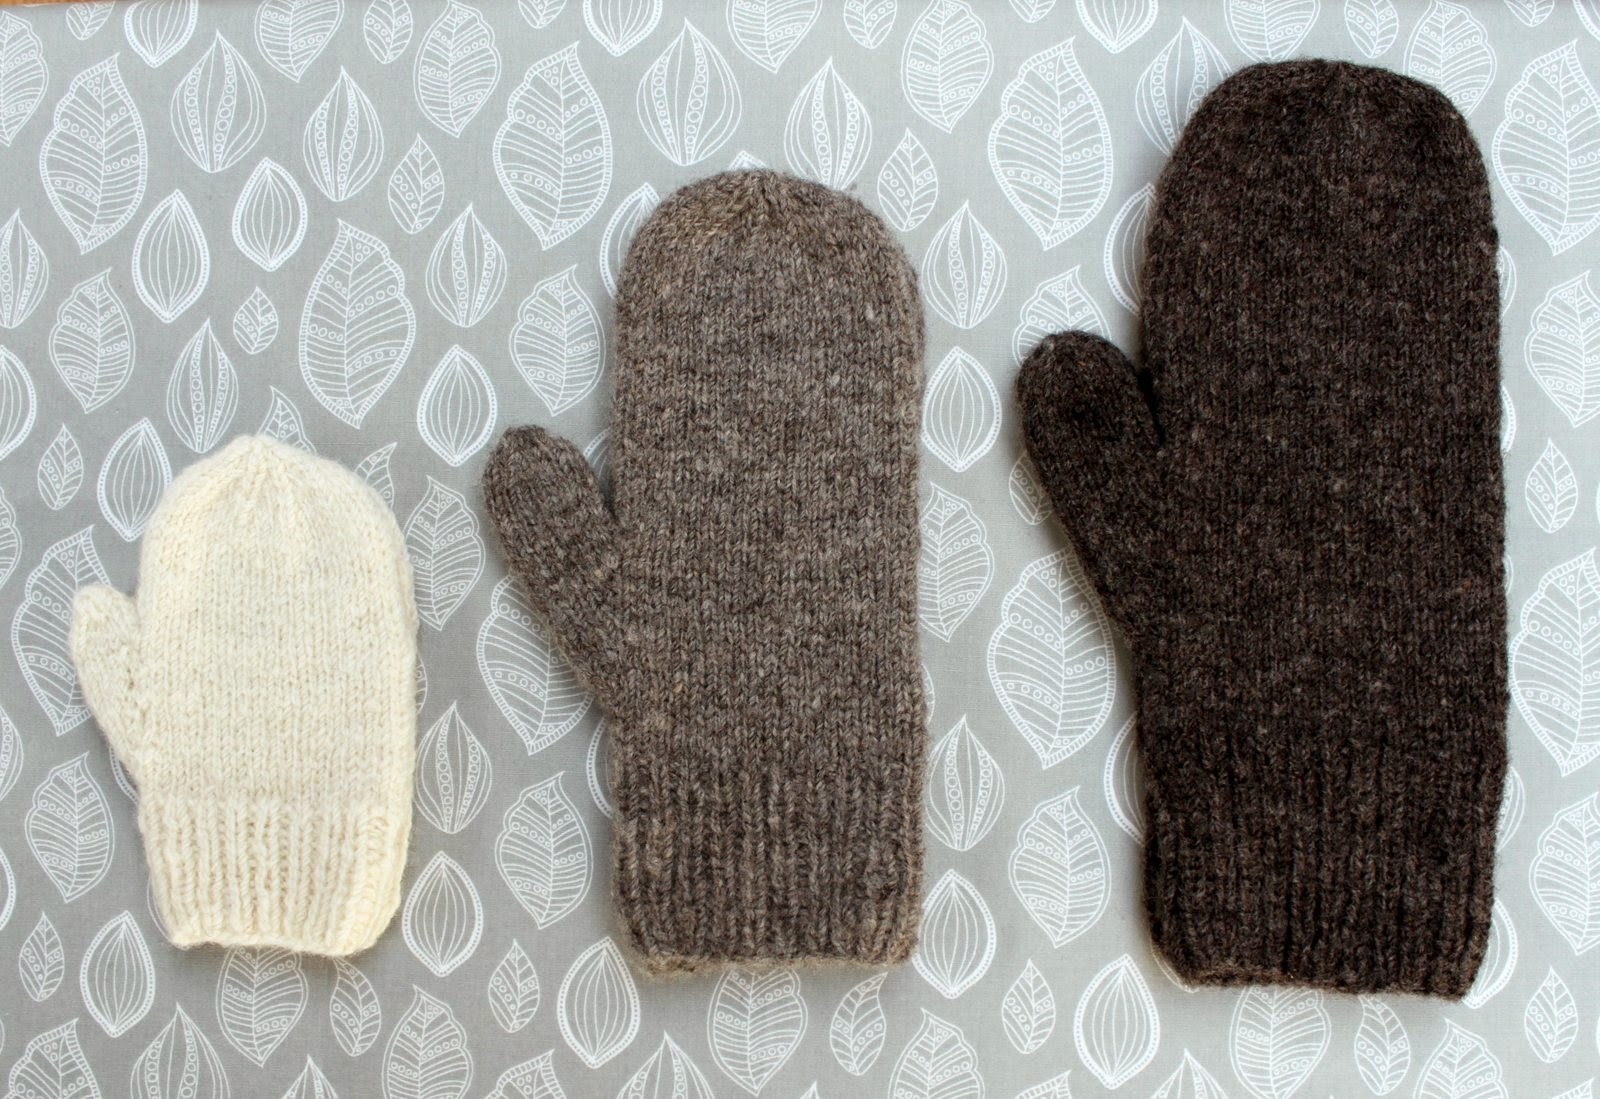 Knitting Patterns For Scarves And Mittens : Hand Knitted Things: Hat Mittens and Scarf